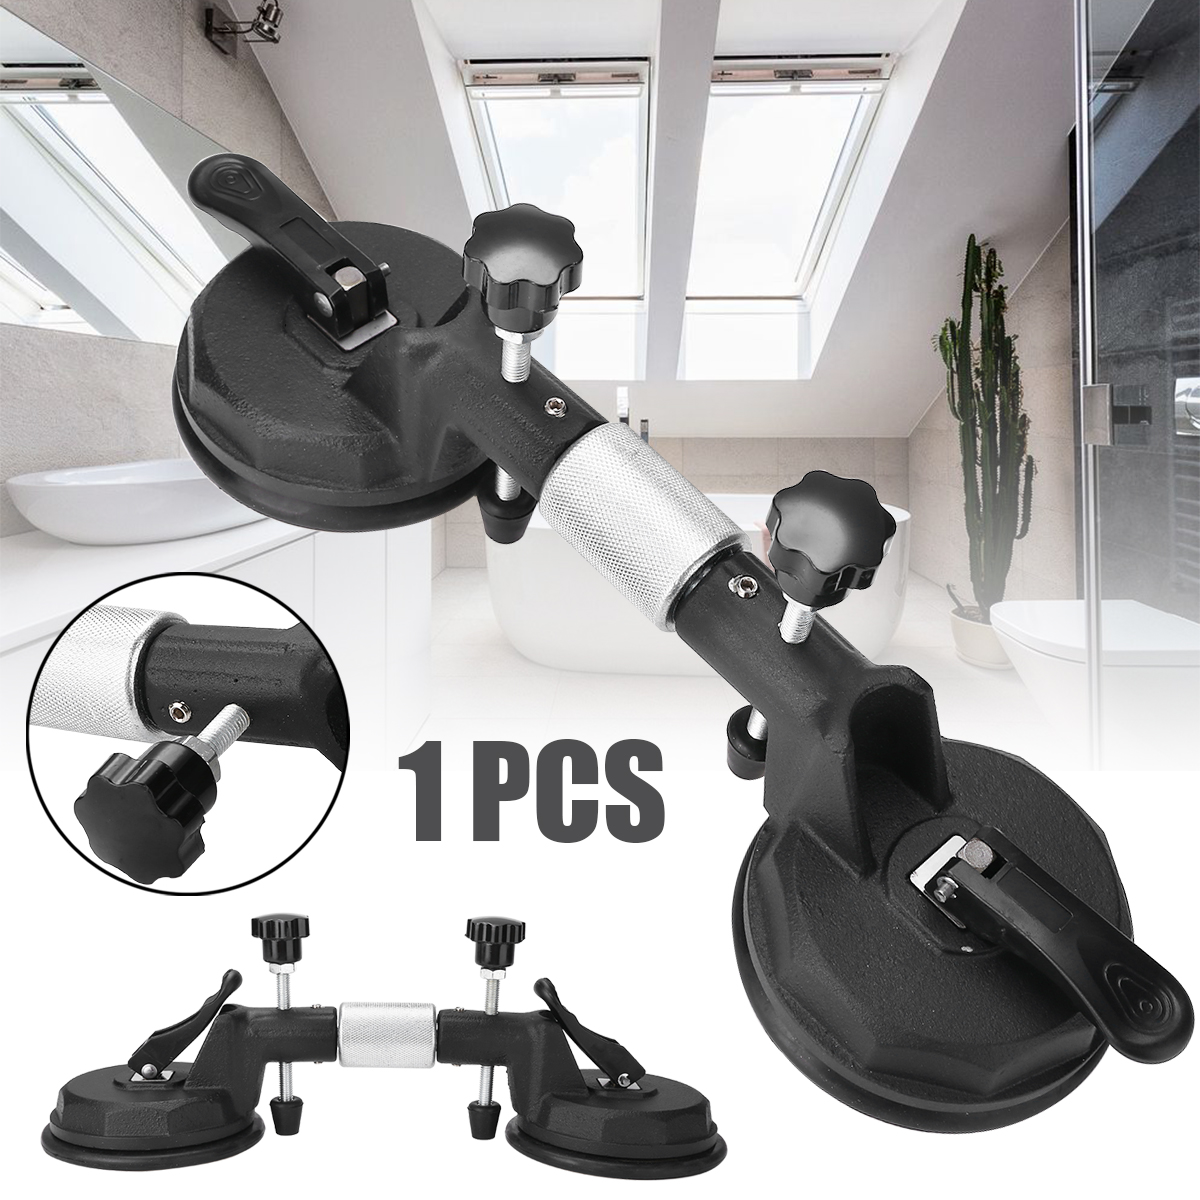 1pc Seamless Stone Seam Setter Manual Rubber Vacuum Leveling Setter for Joint with Suction Cups1pc Seamless Stone Seam Setter Manual Rubber Vacuum Leveling Setter for Joint with Suction Cups